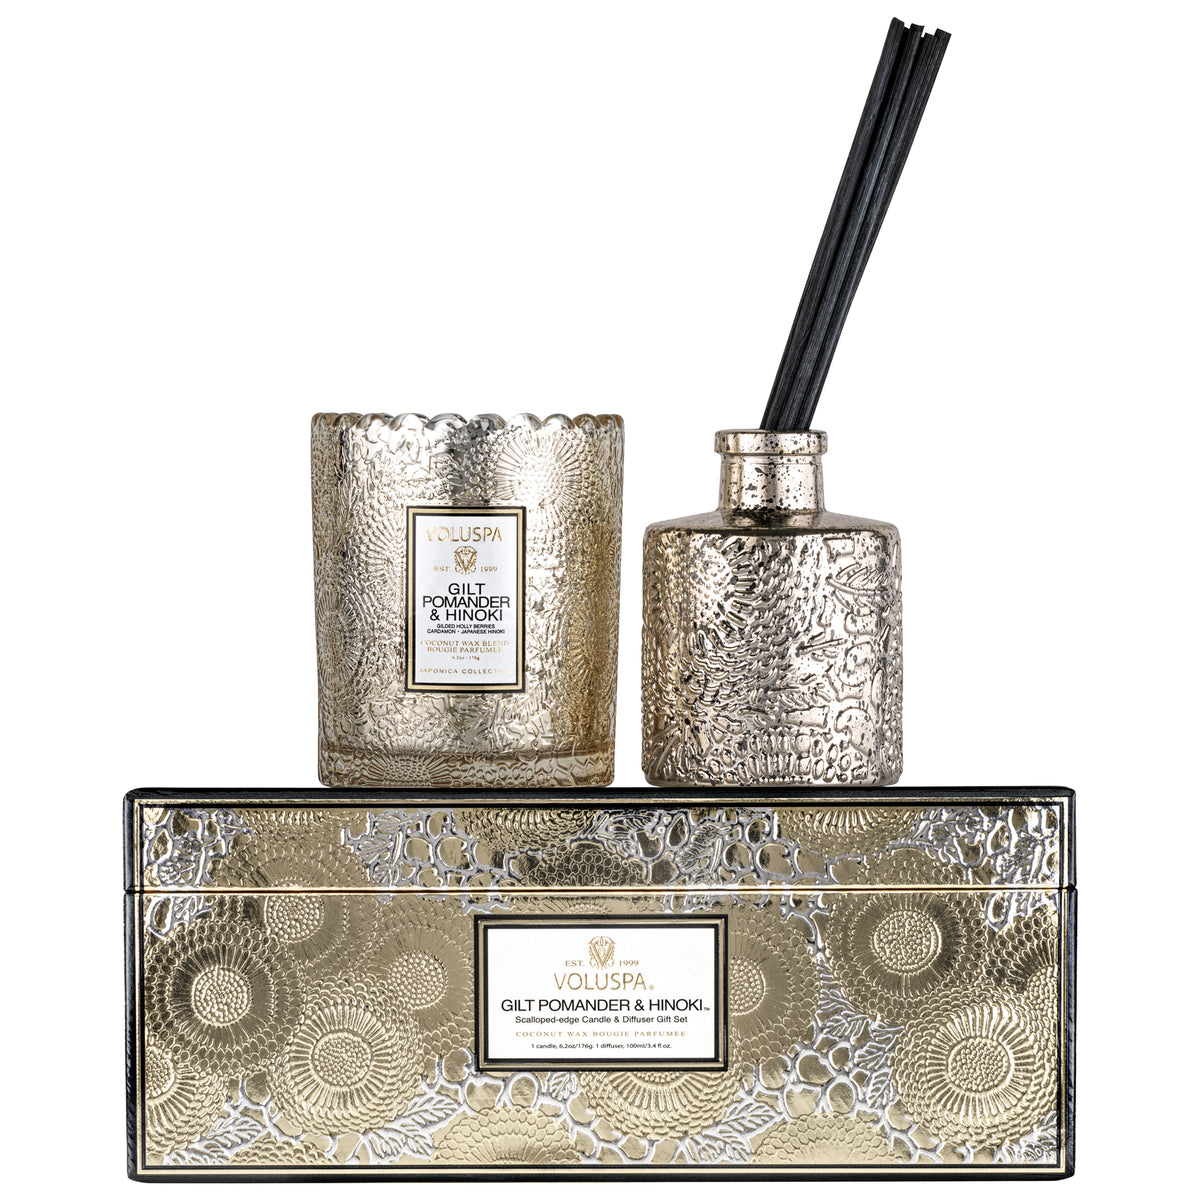 Gilt Pomander & Hinoki - Scalloped Edge Candle & Diffuser Gift Set - 1